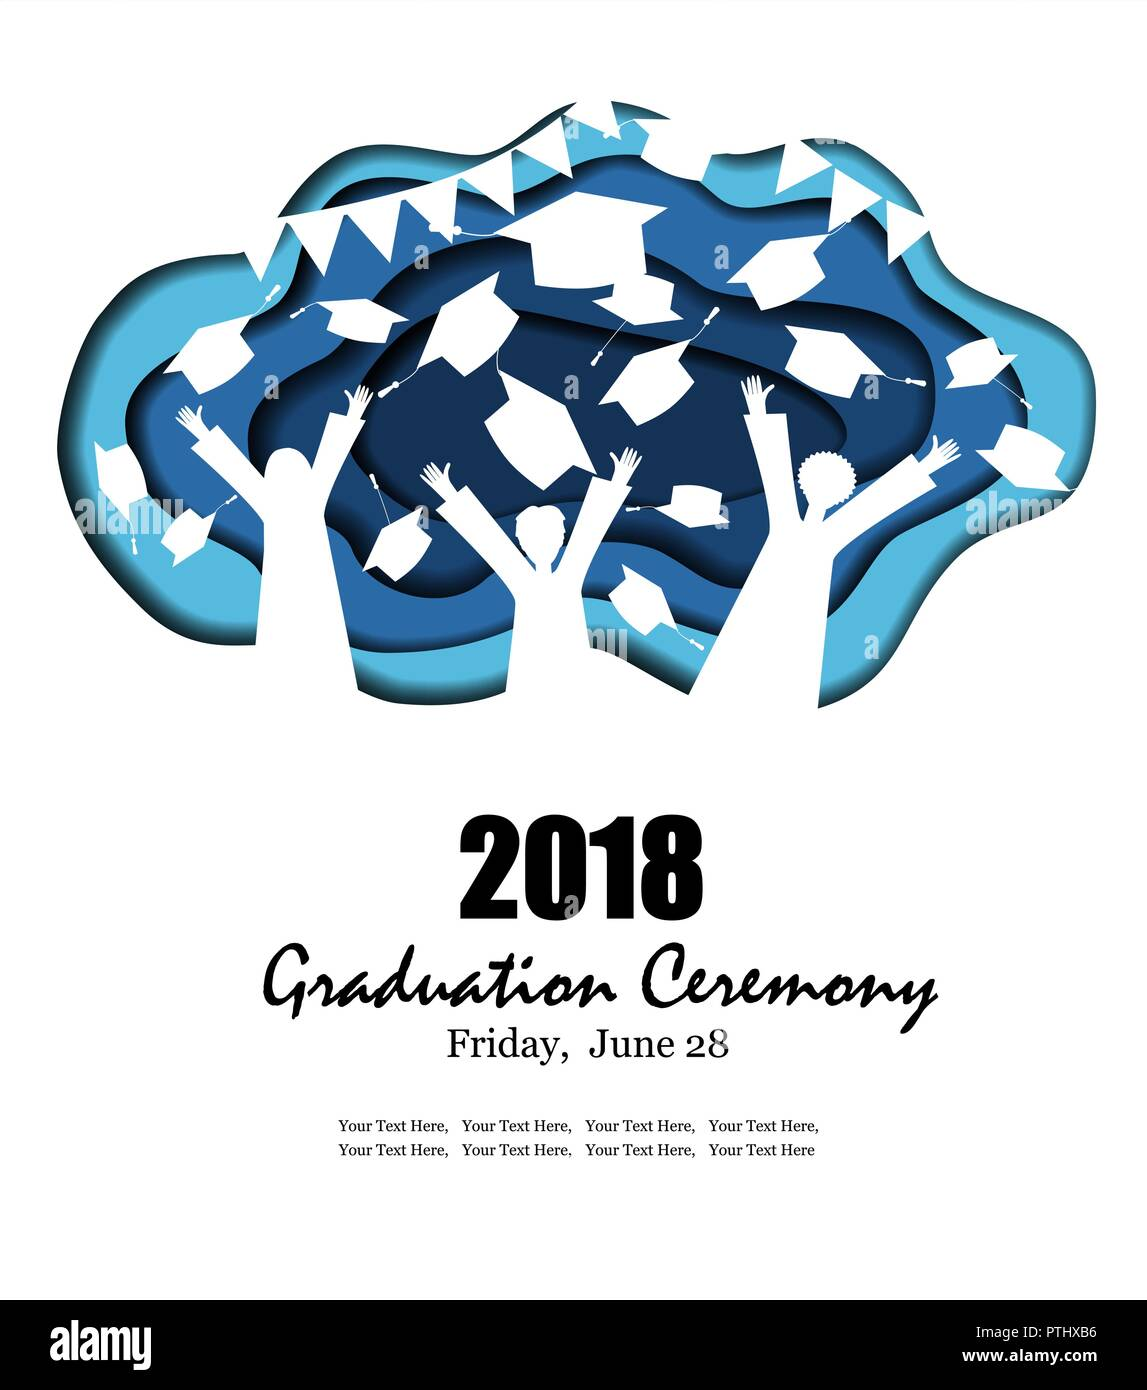 Graduation party background in paper art style with happy graduates and graduate hats silhouettes. Vector illustration in trendy carved craft style - Stock Image